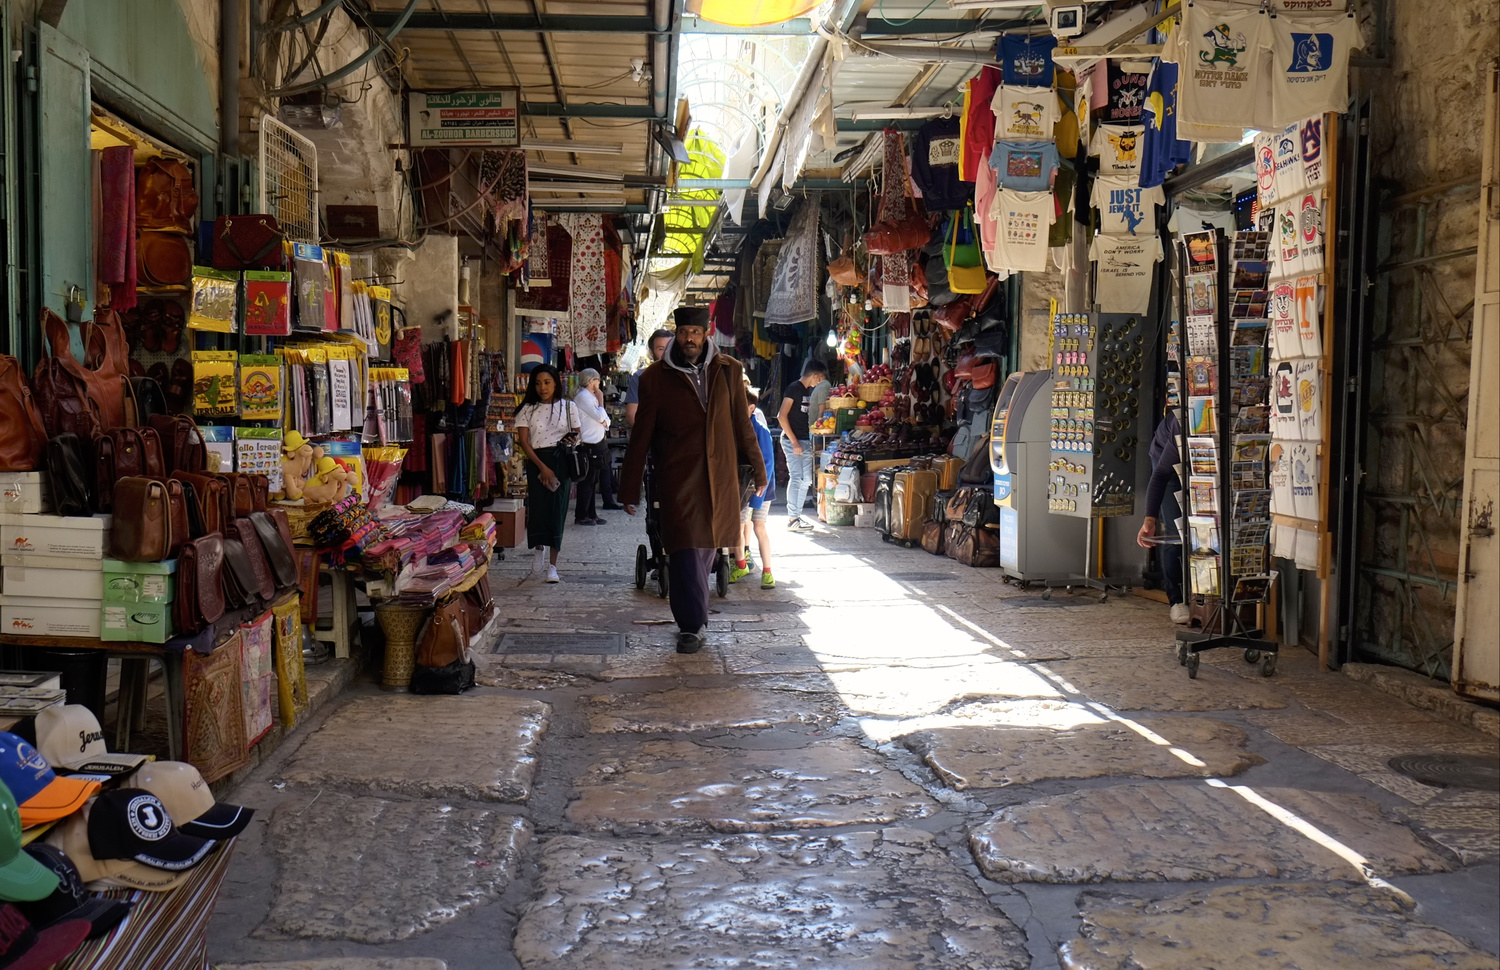 The old city in Jerusalem by Marian Pollock